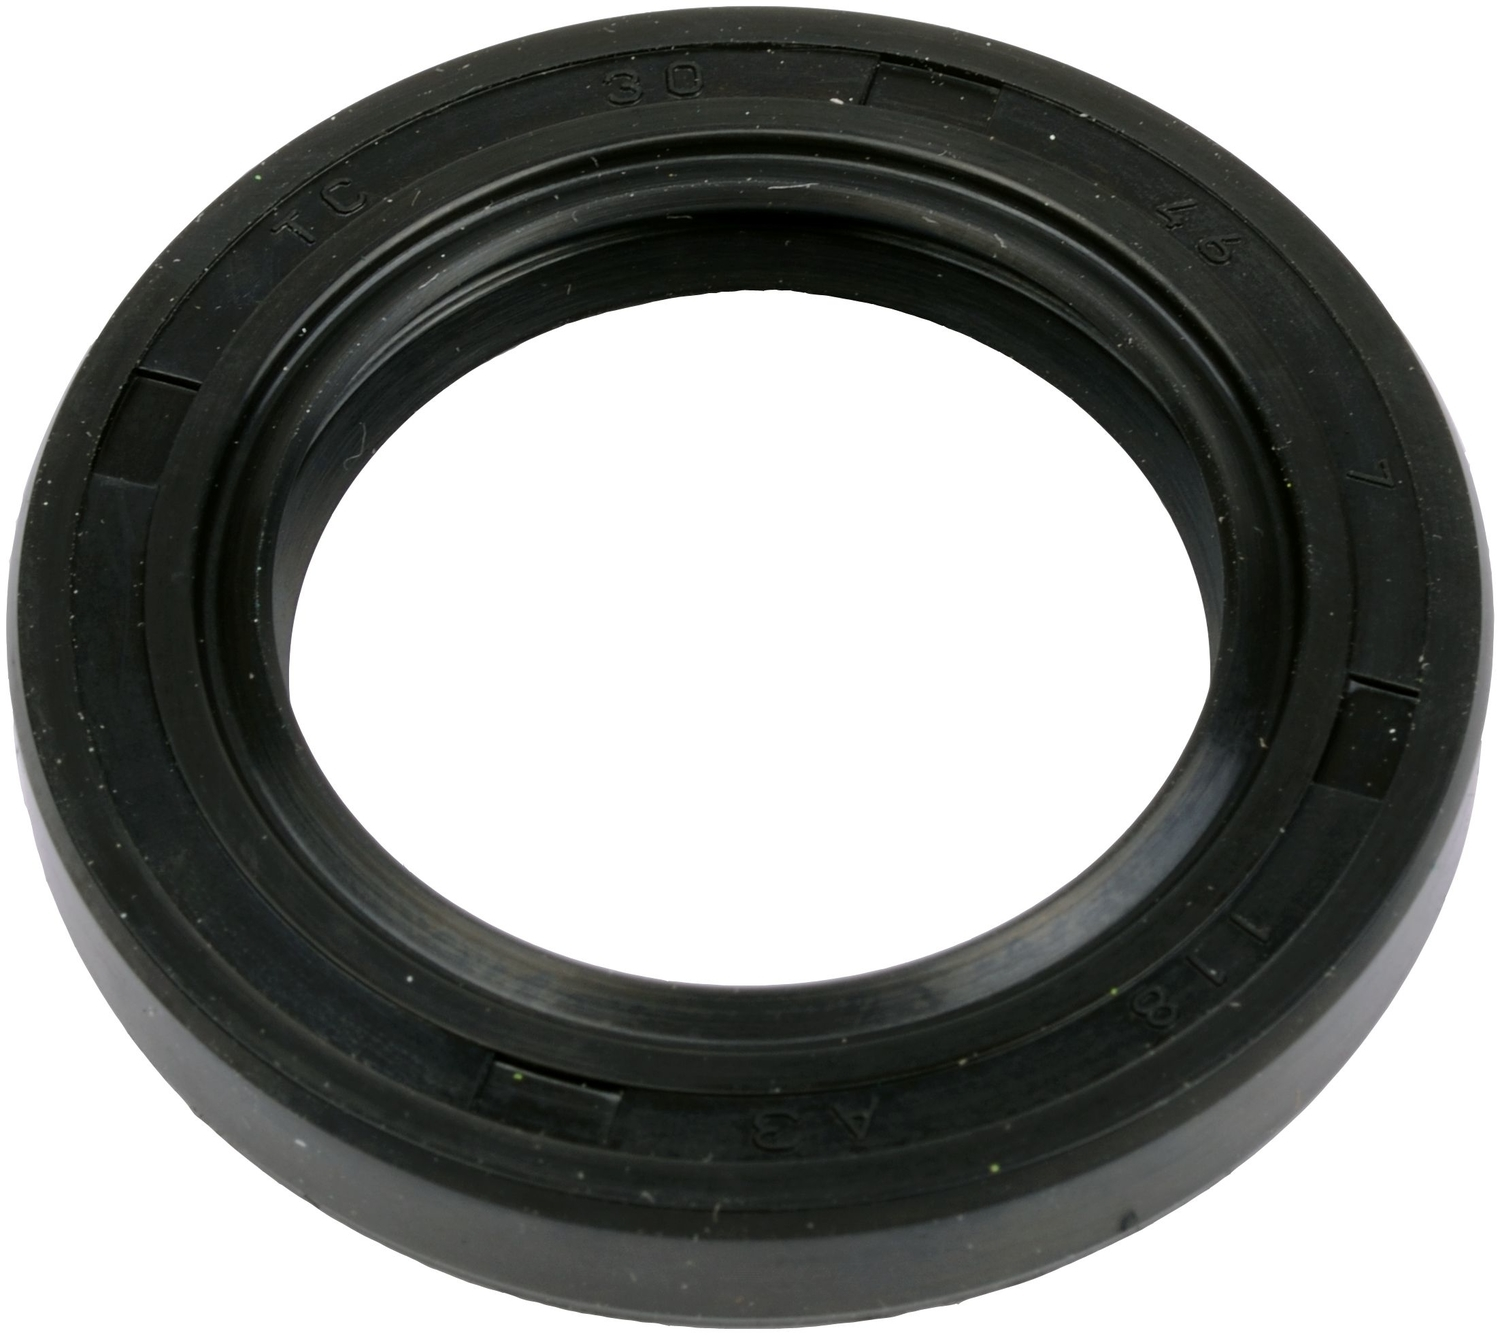 SKF (CHICAGO RAWHIDE) - Drive Shaft Seal - SKF 15881